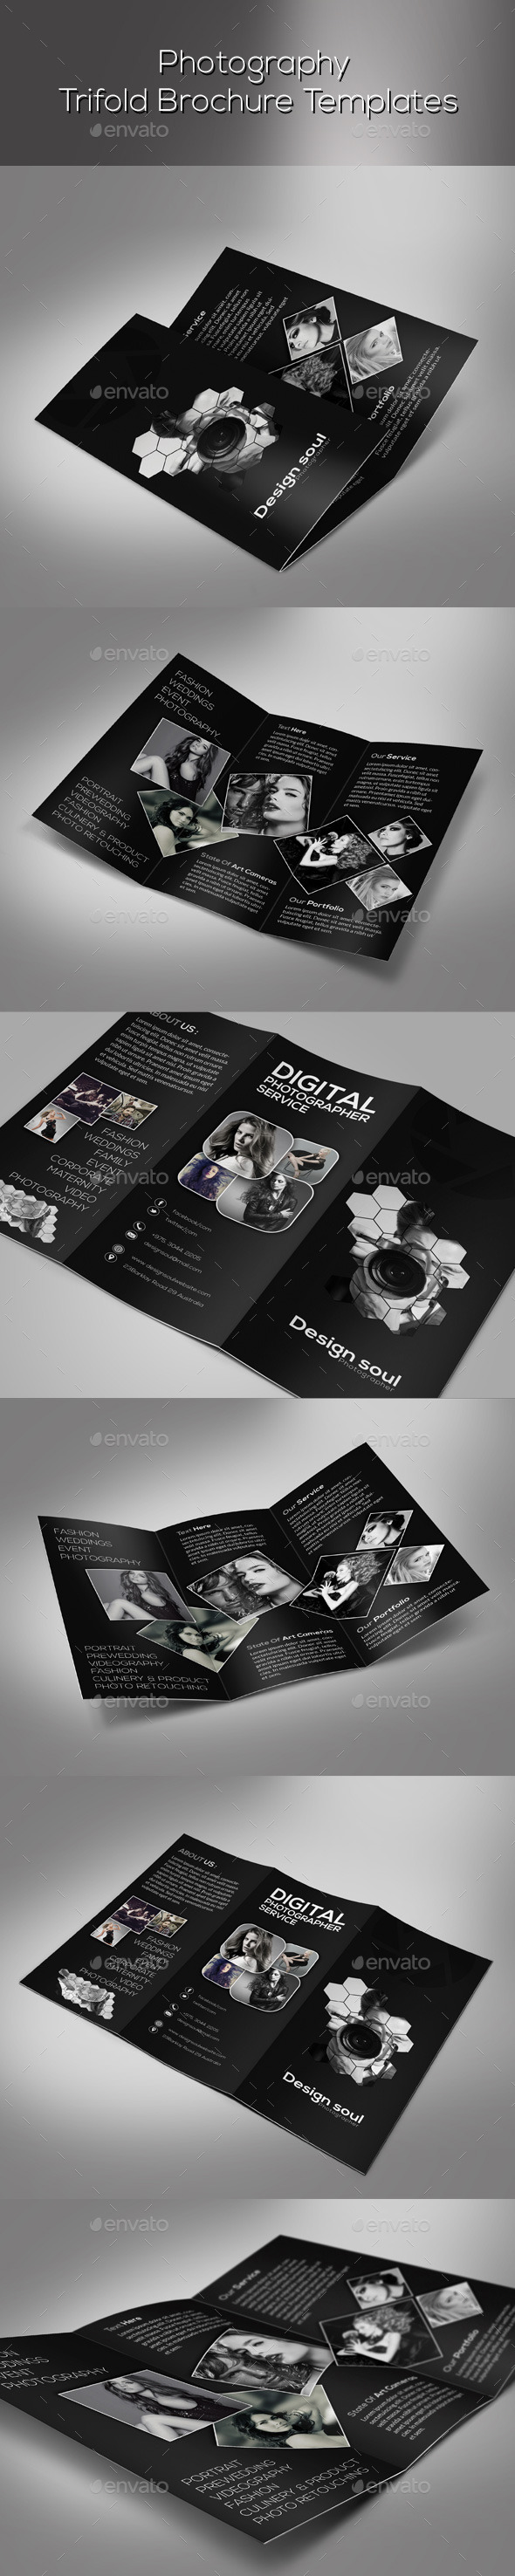 GraphicRiver Photography Trifold Brochure 9513277